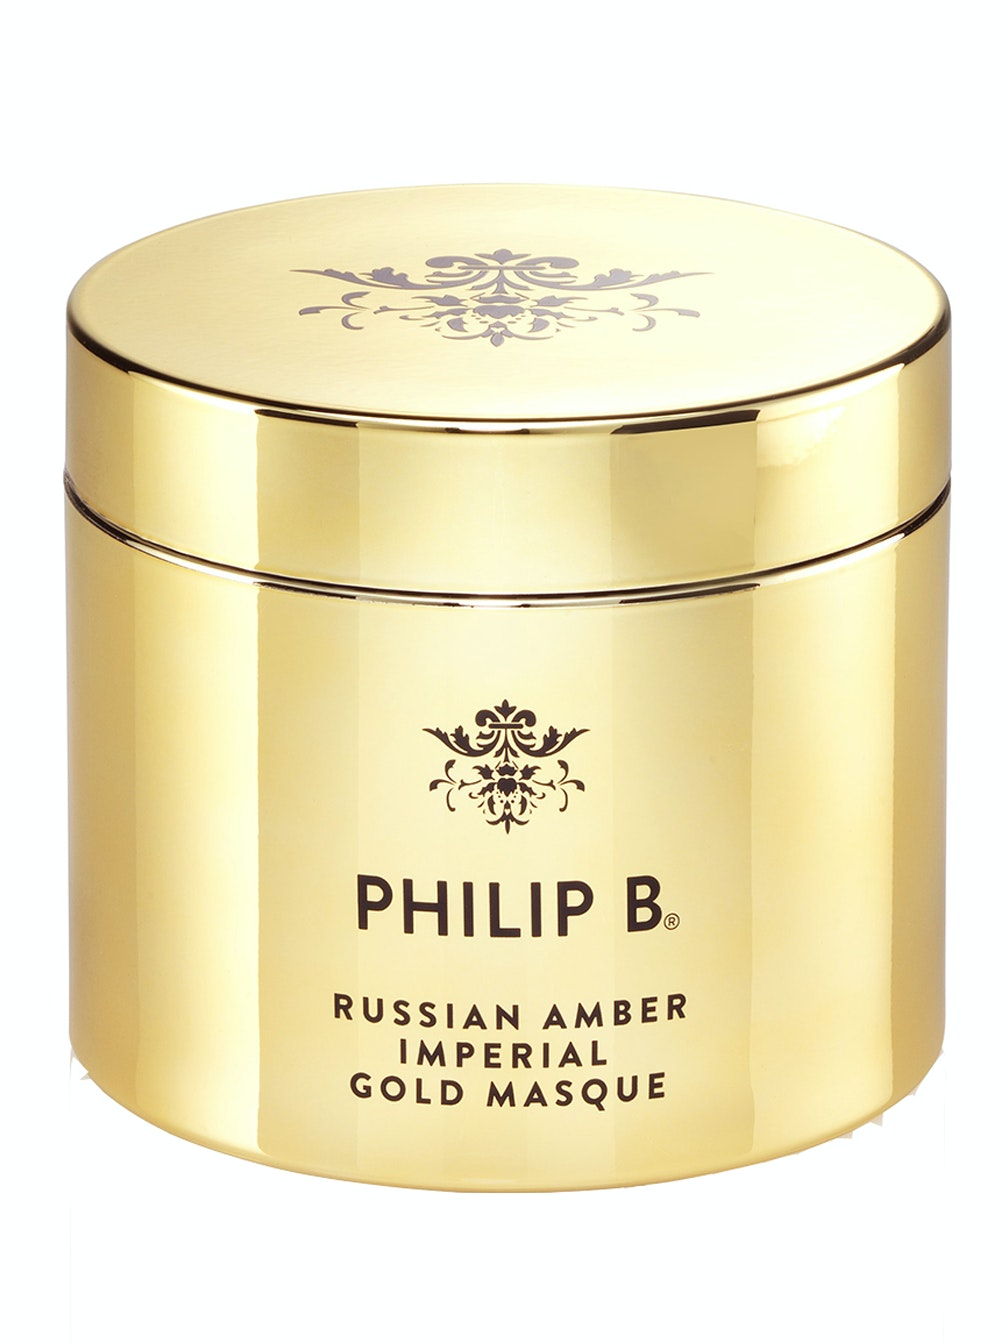 PHILIP B. Russian Amber Imperial Gold Masque